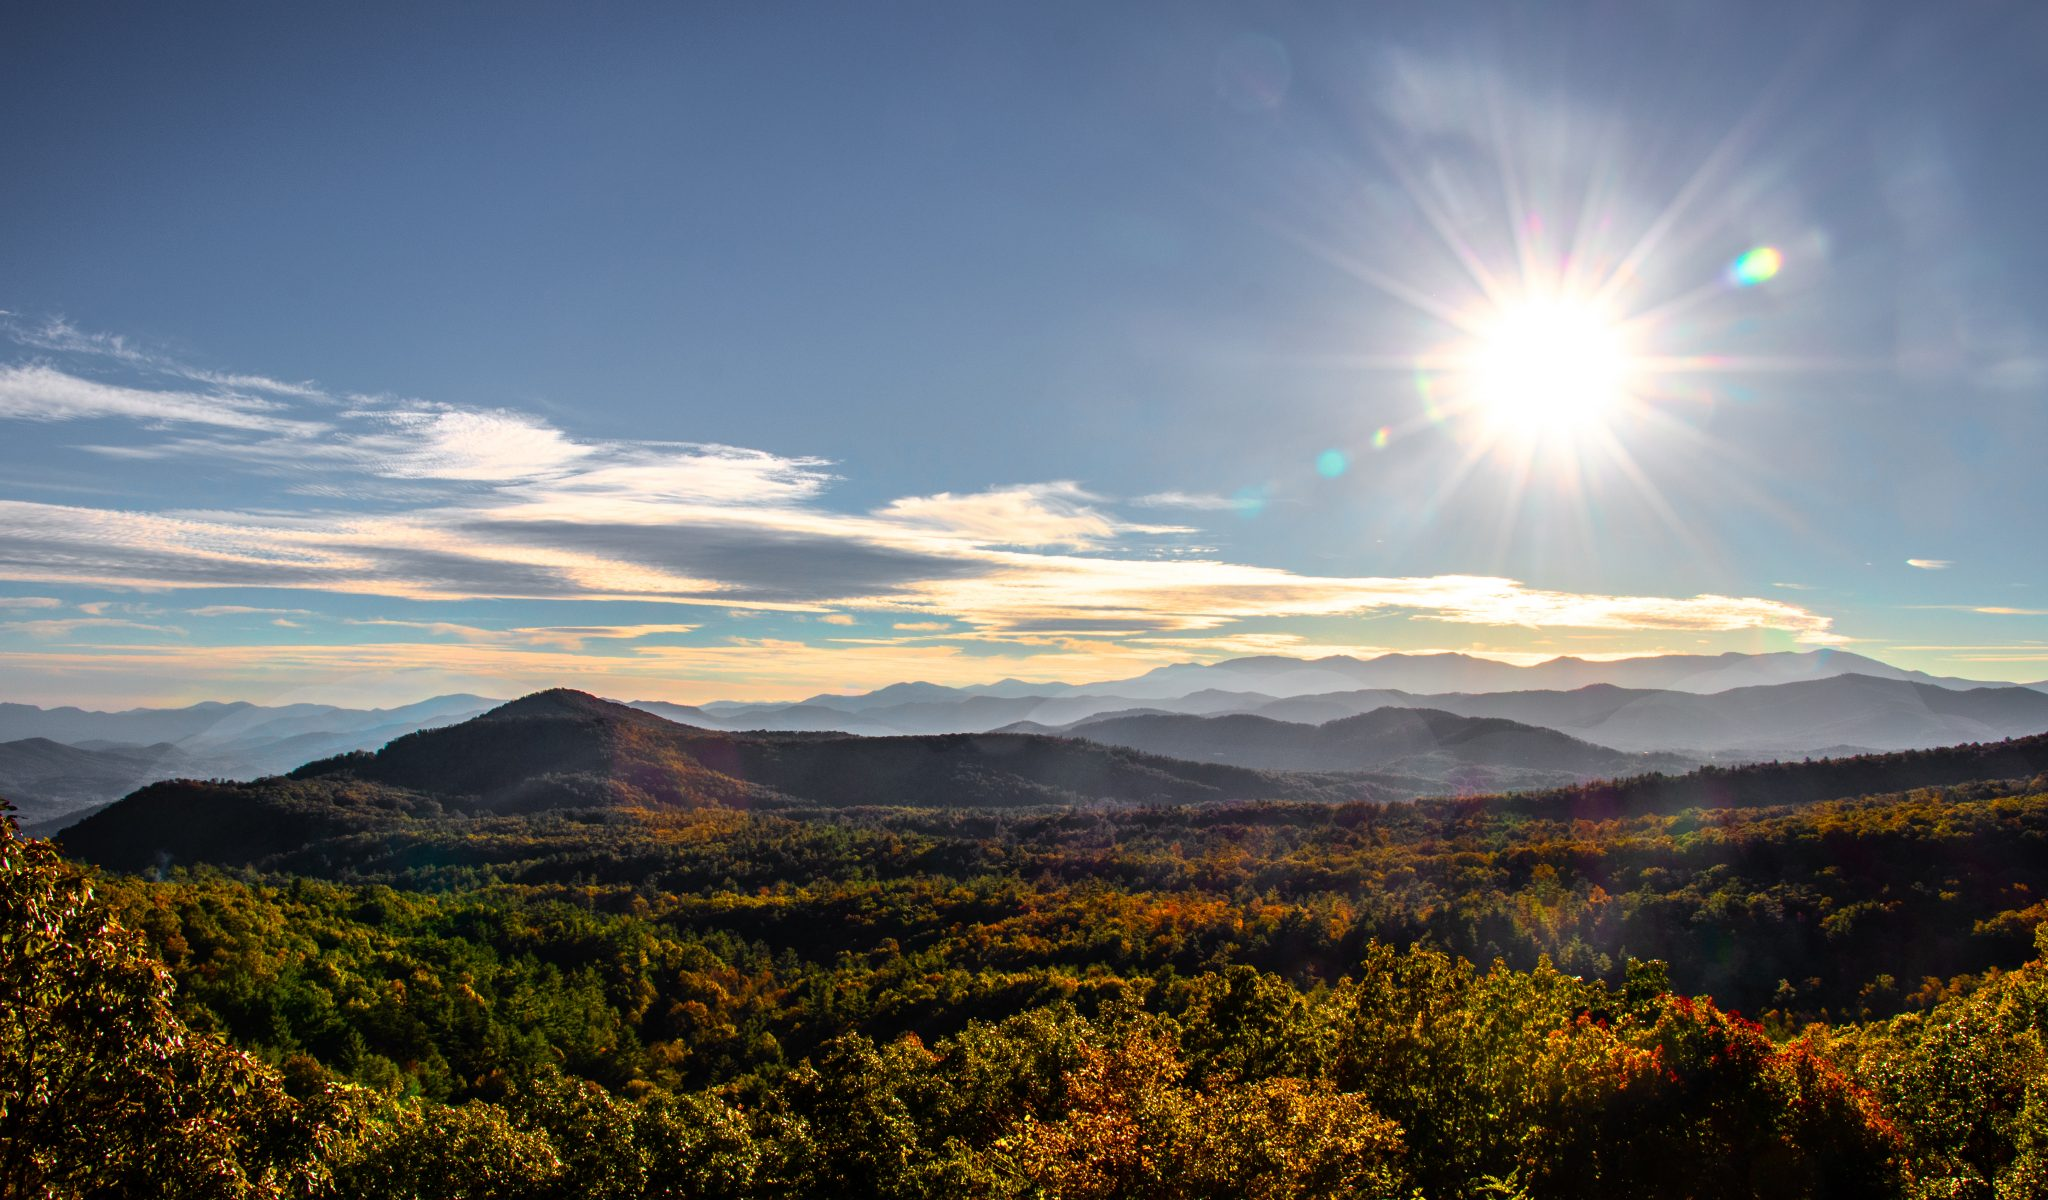 Blowing Rock - A beautiful mountain village in North Carolina, USA!